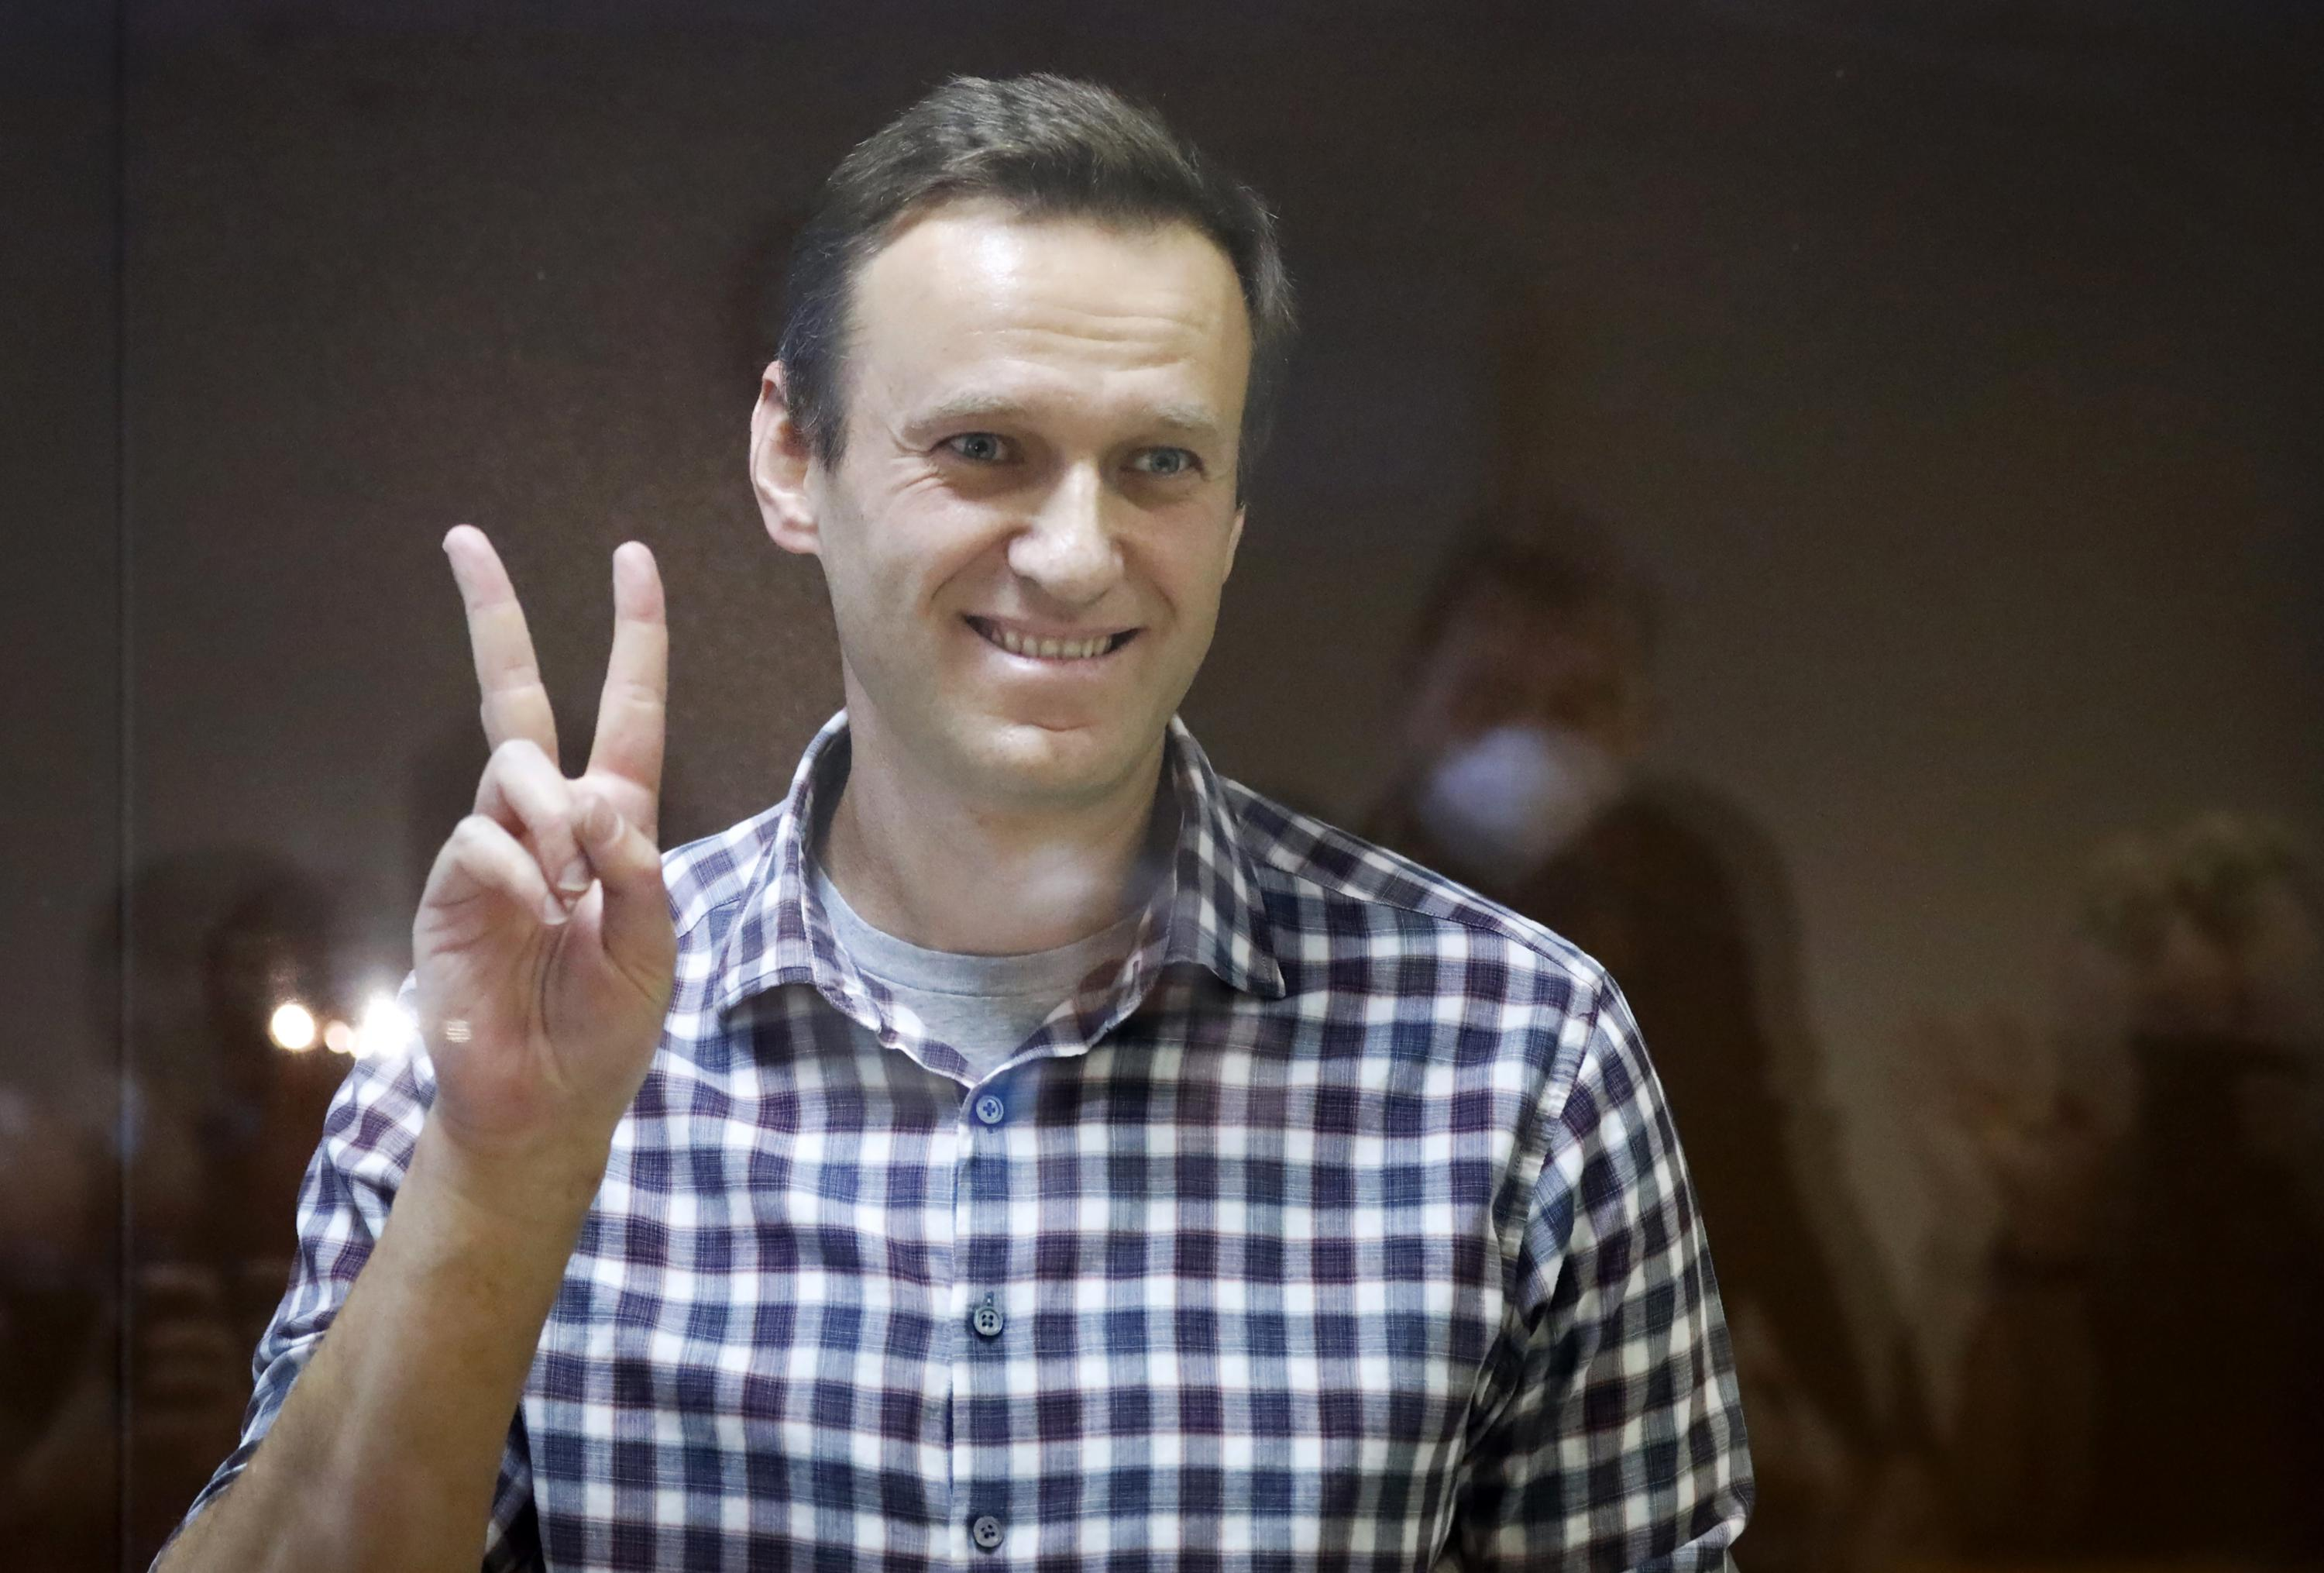 Russia urges Apple, Google to remove Navalny app from stores - Associated Press